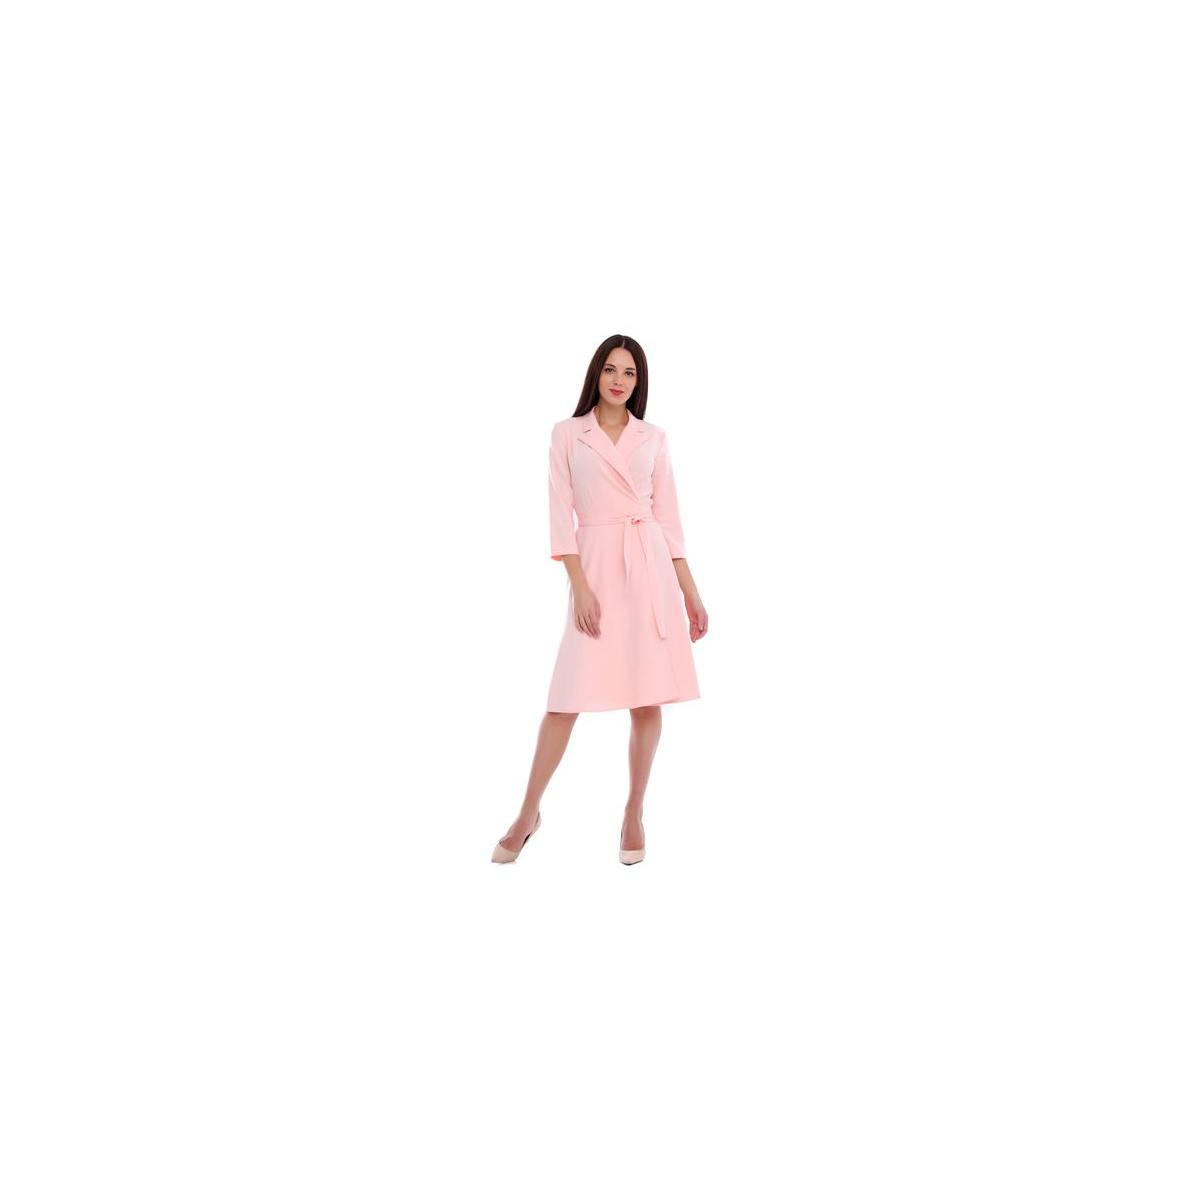 LadyLike Women's Classic 3/4 Sleeve V Neck Modest A-Line Belted Work Office Dress (ALL sizes and ALL colors)